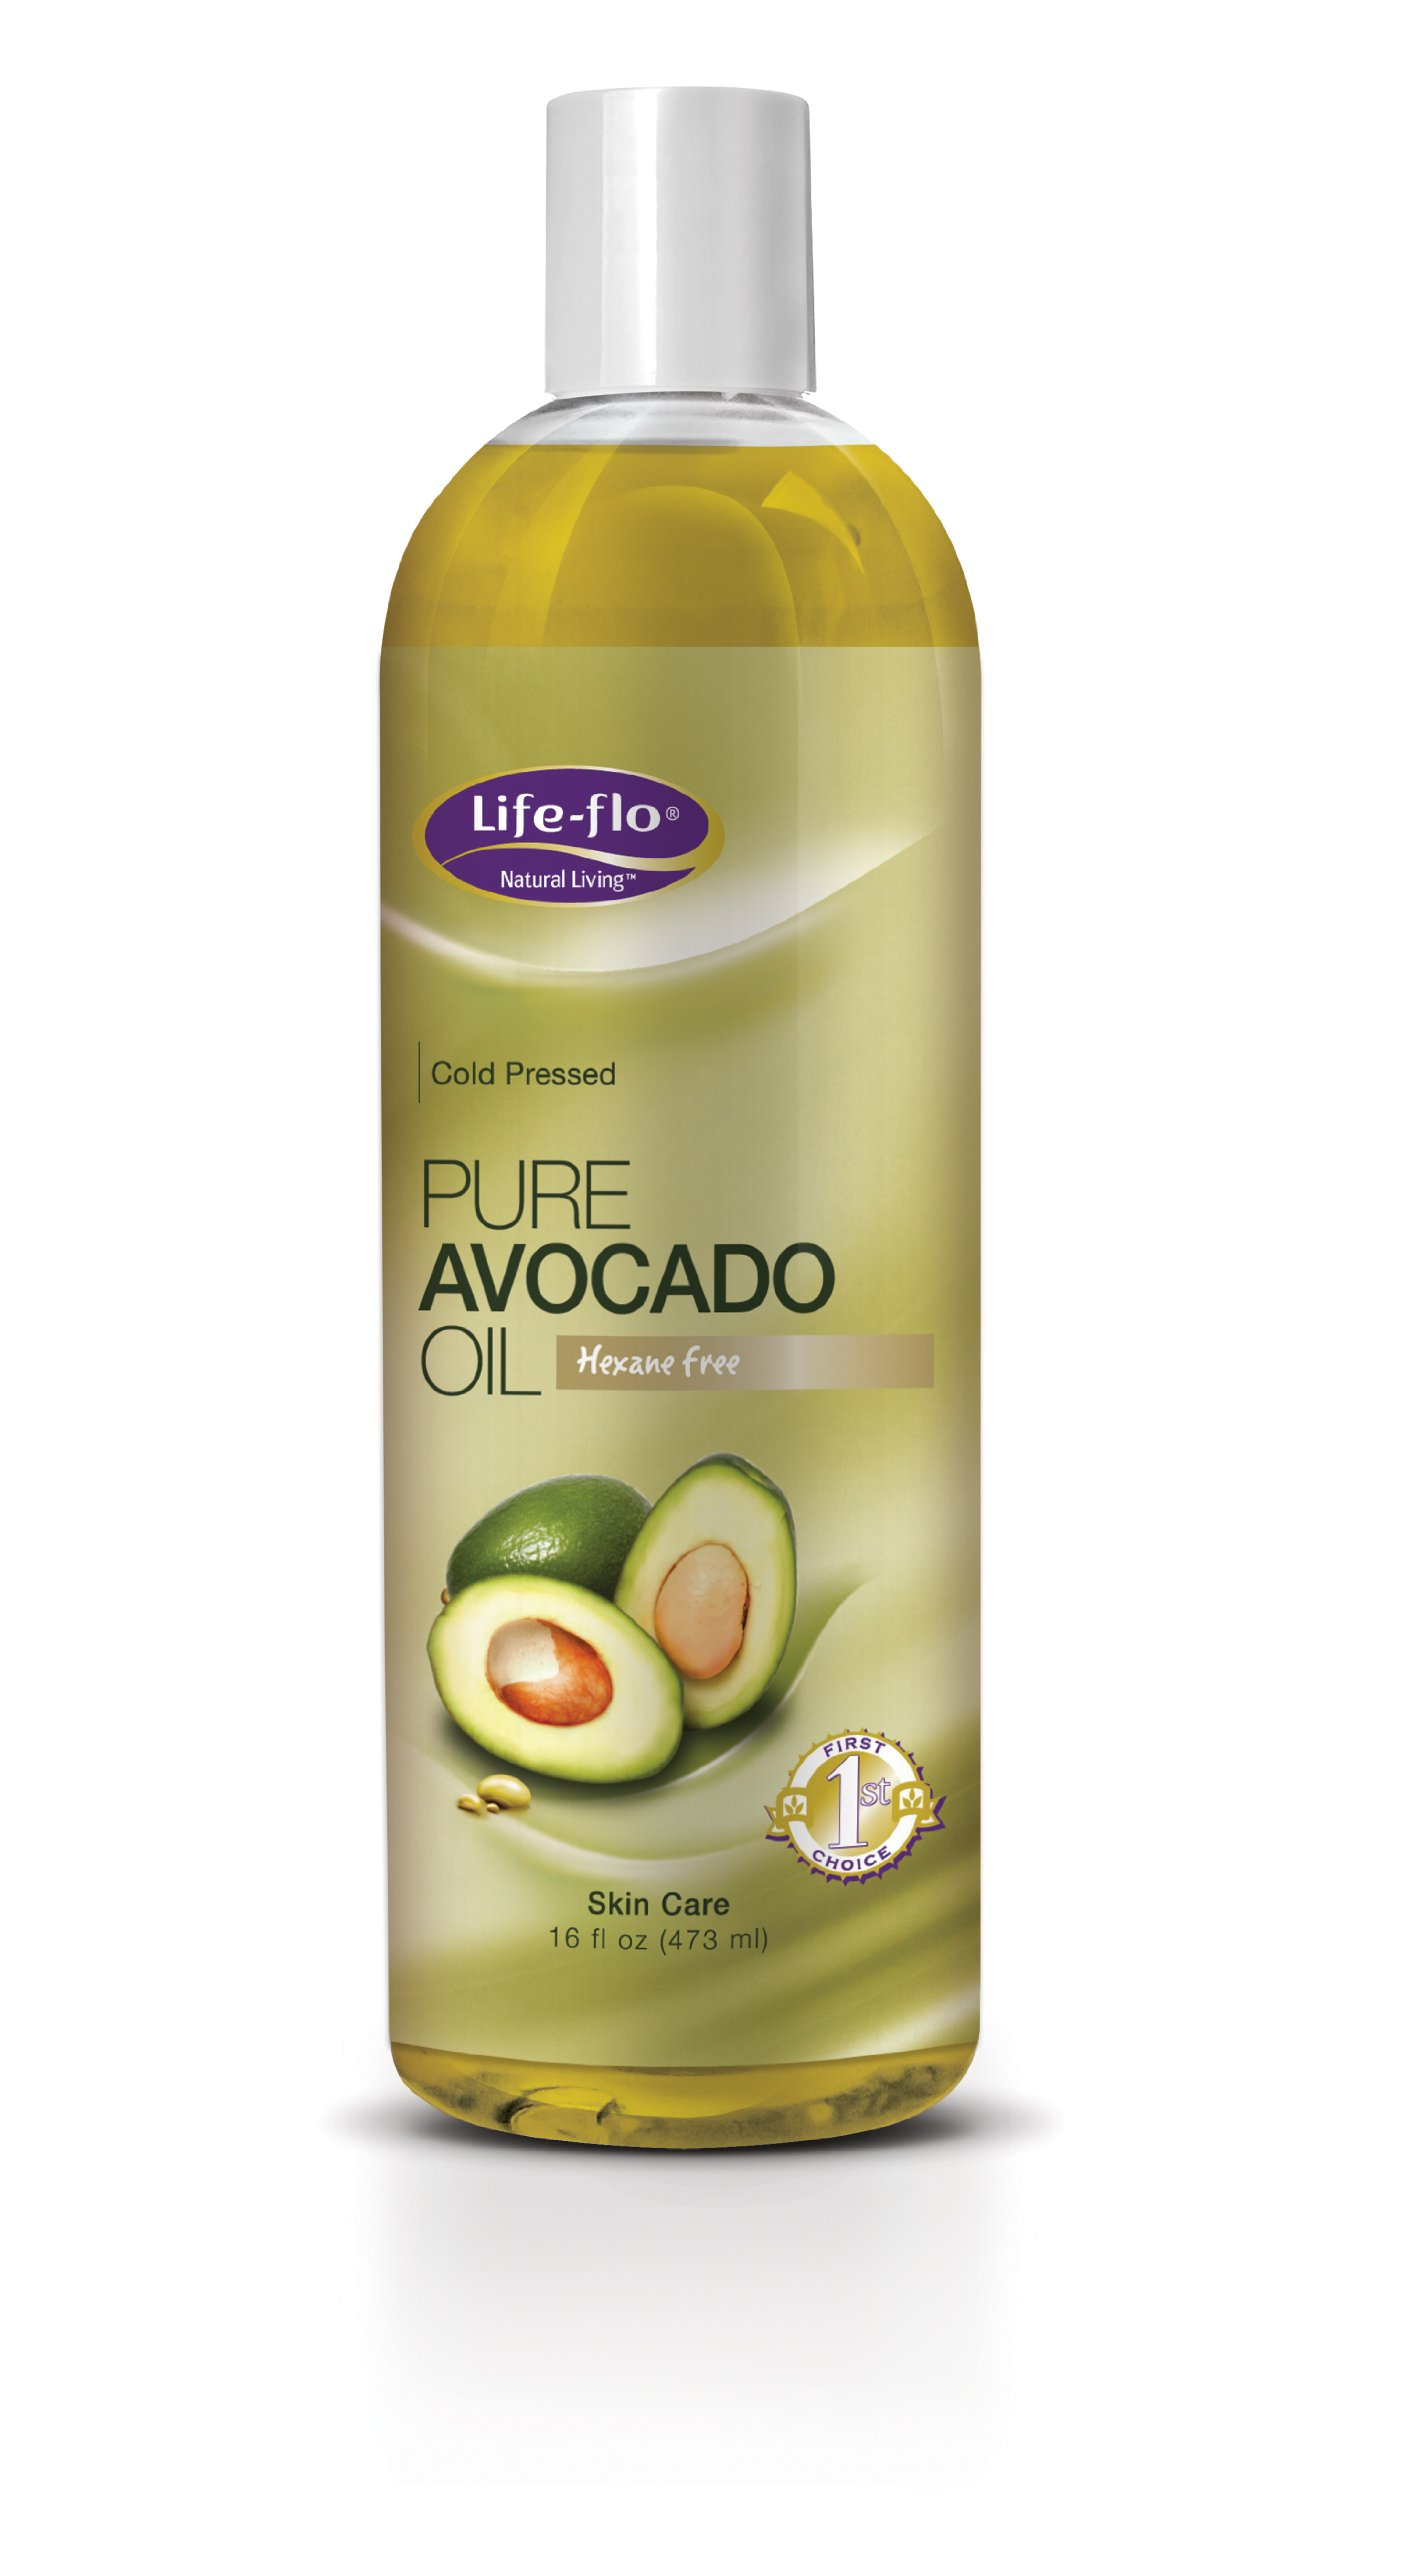 Now Foods Avocado Oil 16 oz, Pack of 2 2 Pk Palmers Cocoa Butter Formula Swivel Stick w/Vitamin E Moisturizes .5oz Each